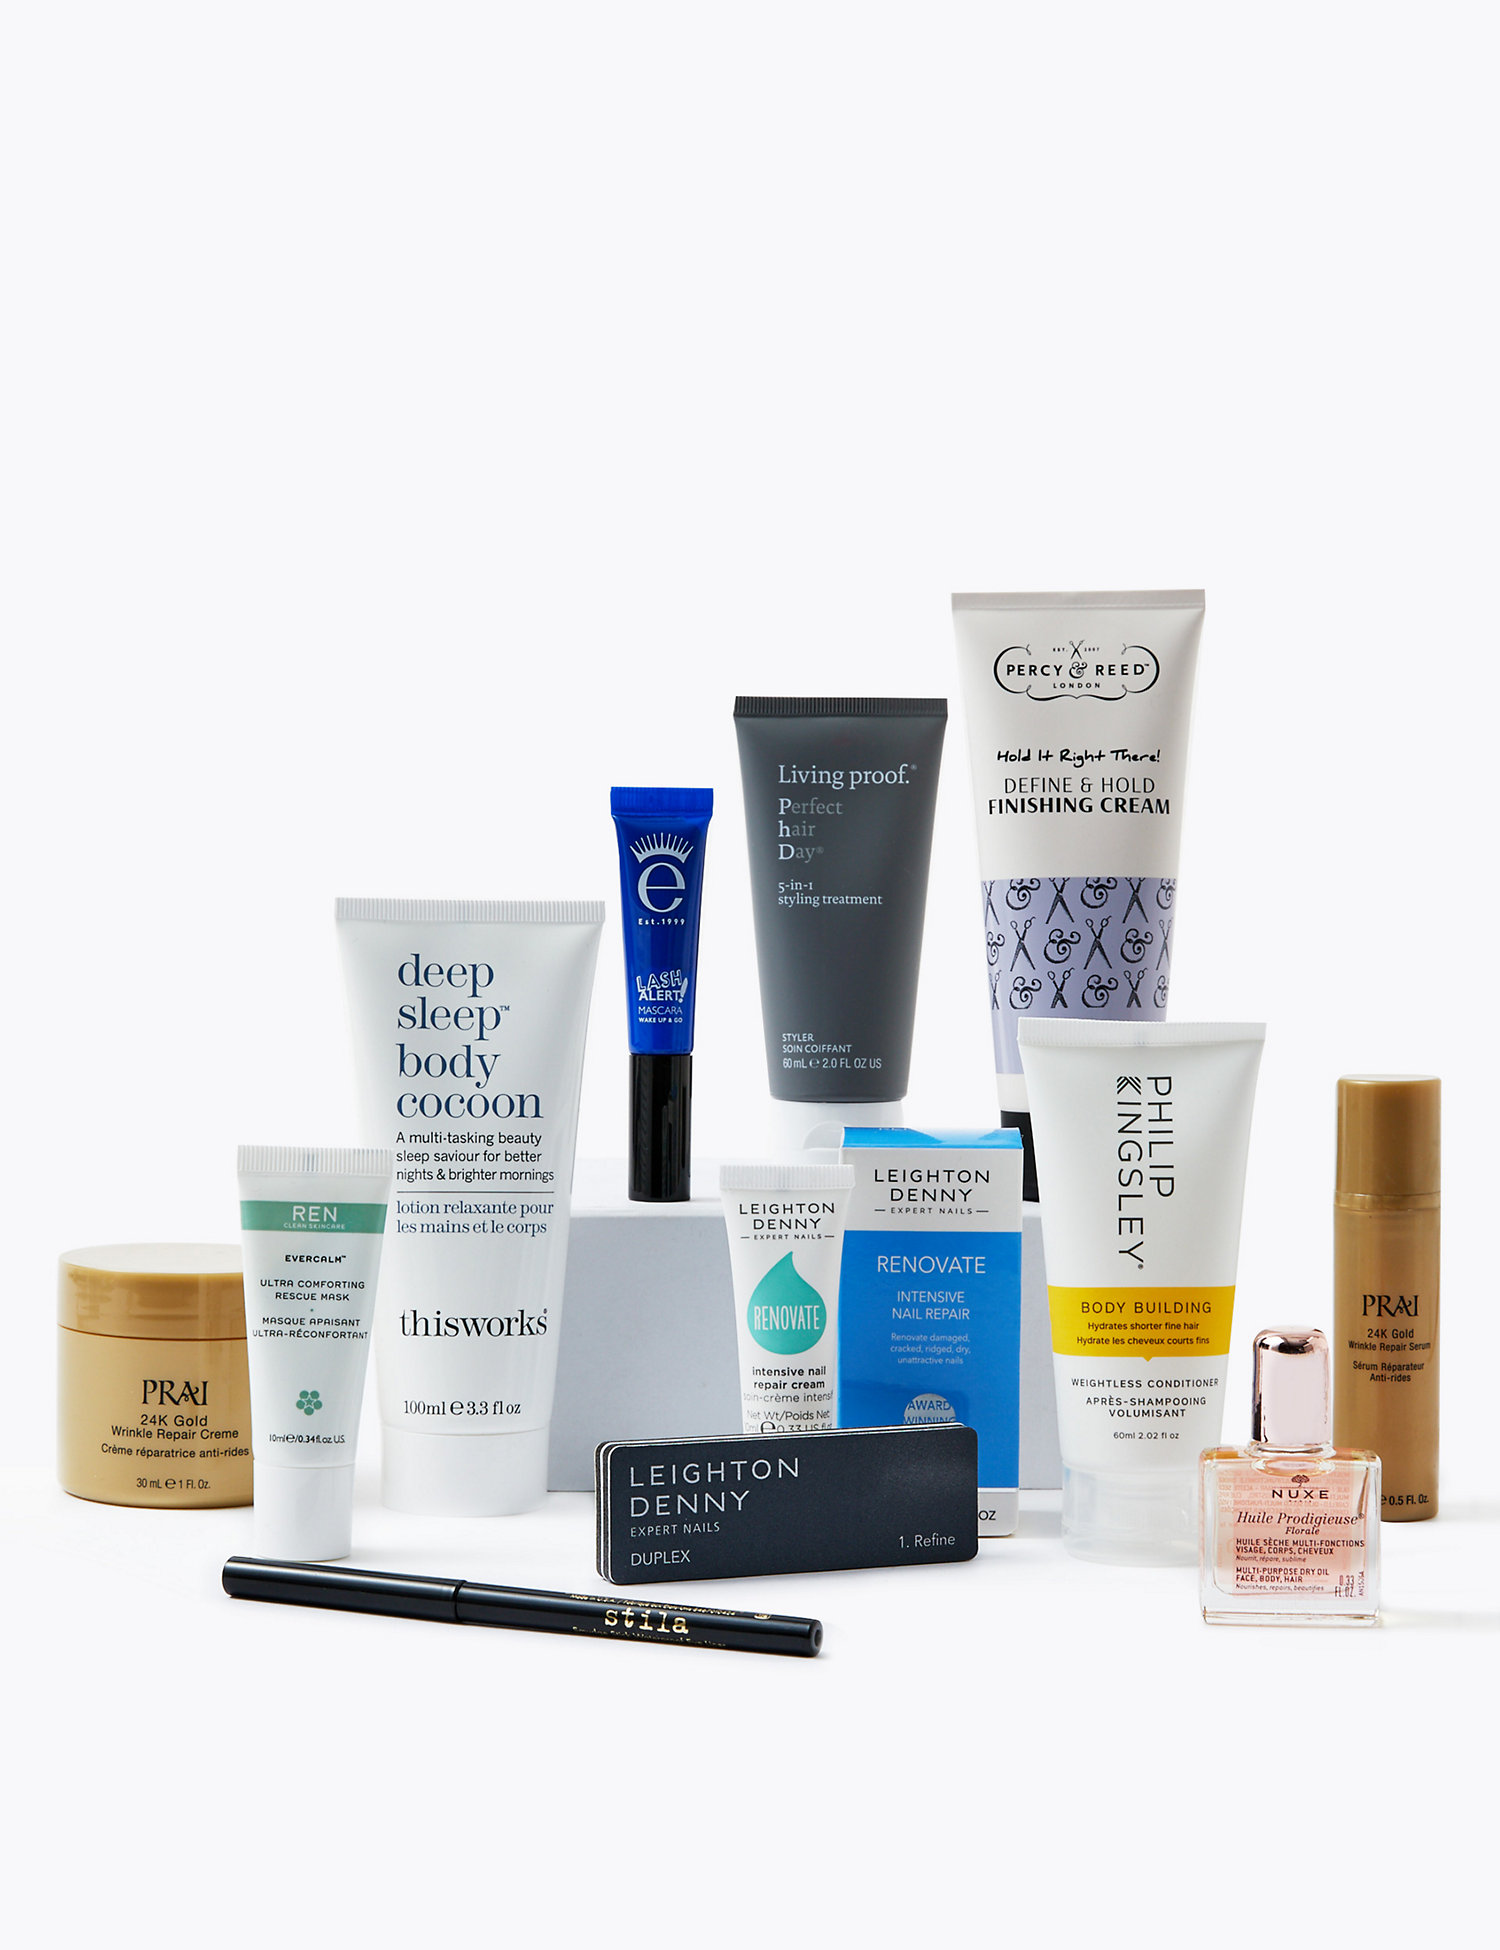 marks and spencer beauty edit box contents